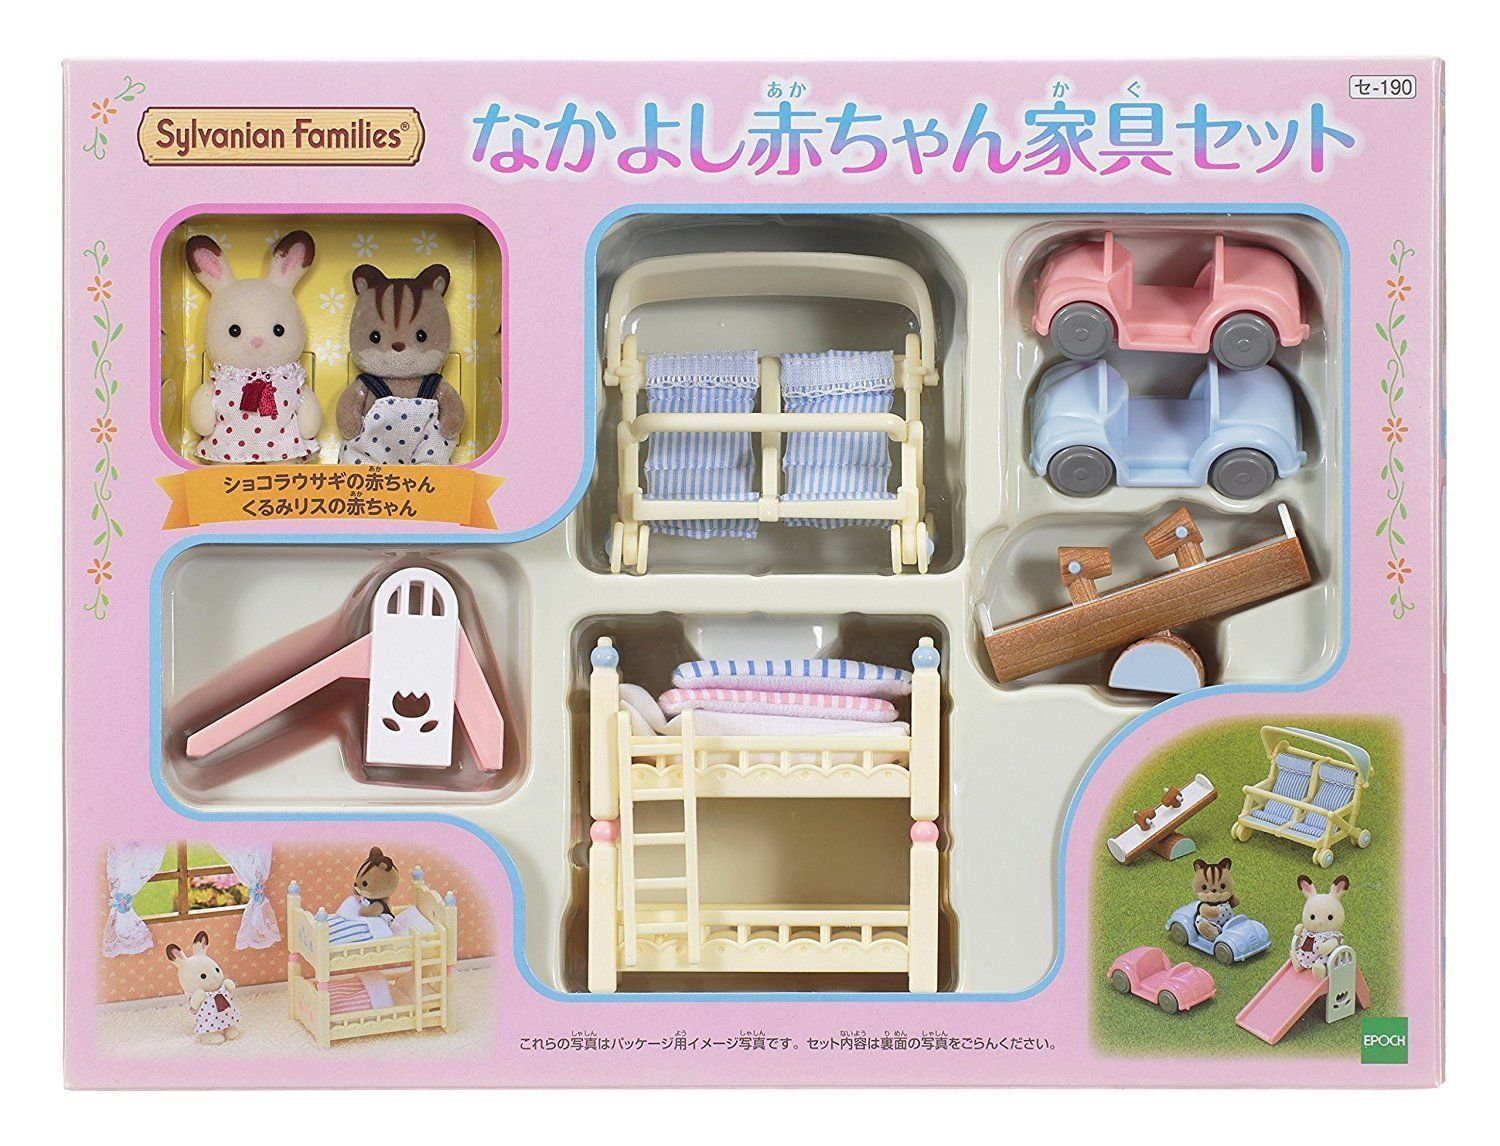 3 Calico Critters Sylvanian Families Close Babies And Baby Furniture Set Epoch Baby Furniture Sets Calico Critters Furniture Sylvanian Families